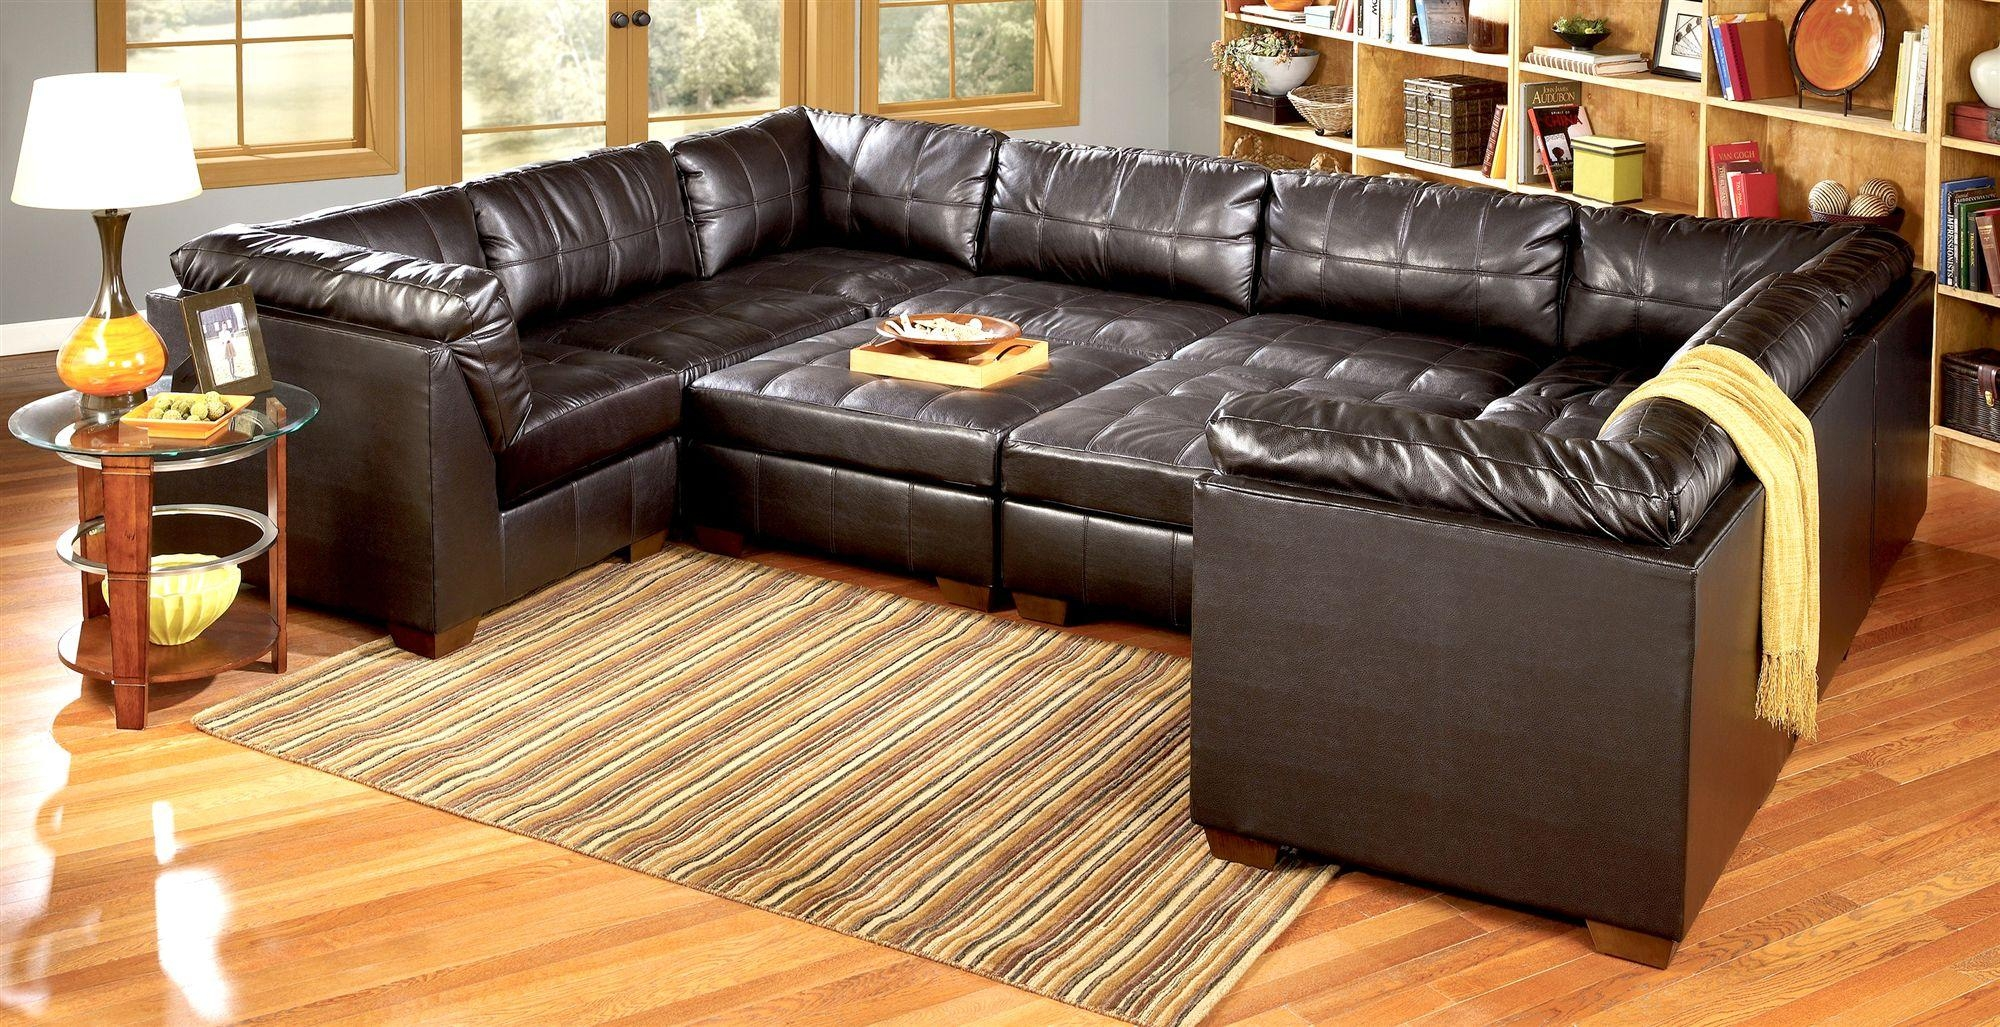 High Back Sectional Sofas | Olsonware Sofa Cleaners Ikea Stockholm Within Wide Seat Sectional Sofas (View 10 of 20)